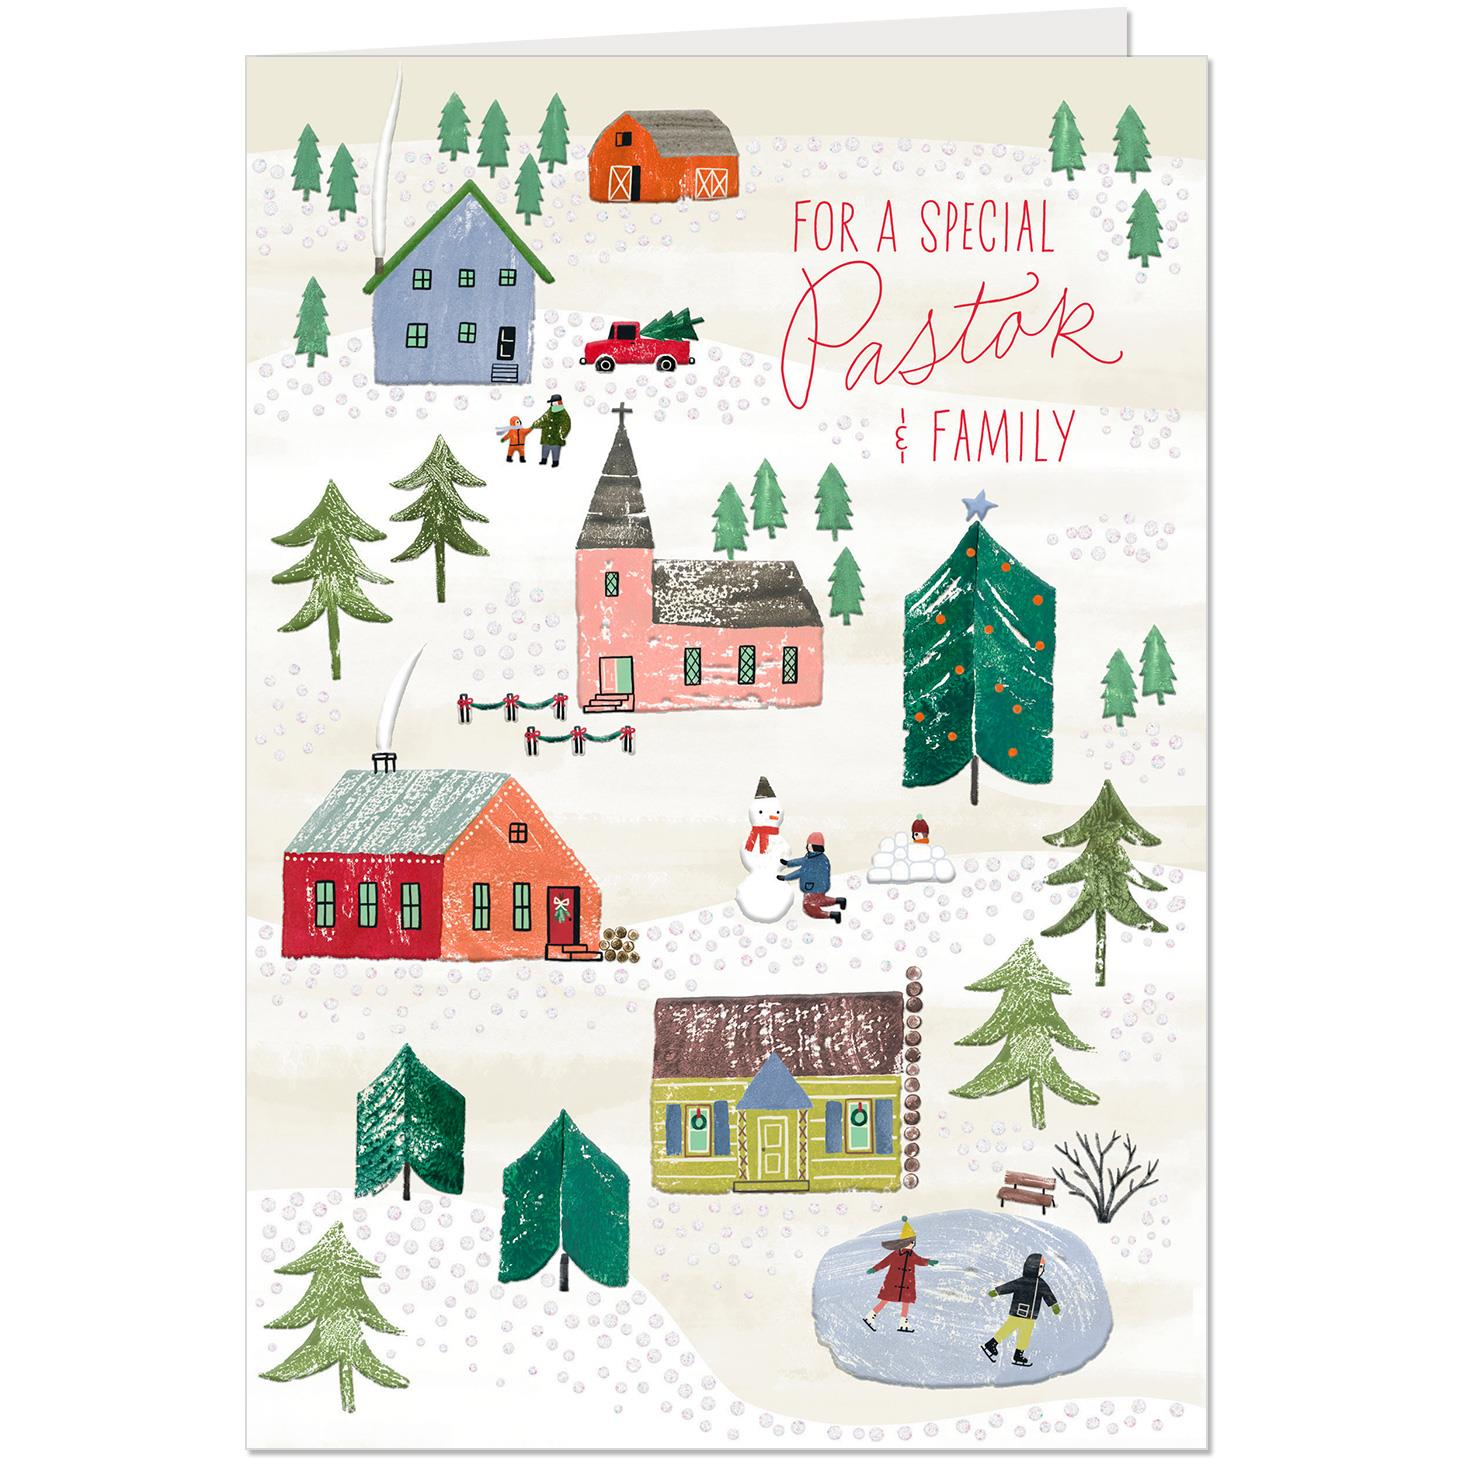 christmas village religious christmas card for pastor and family - Hallmark Christmas Village